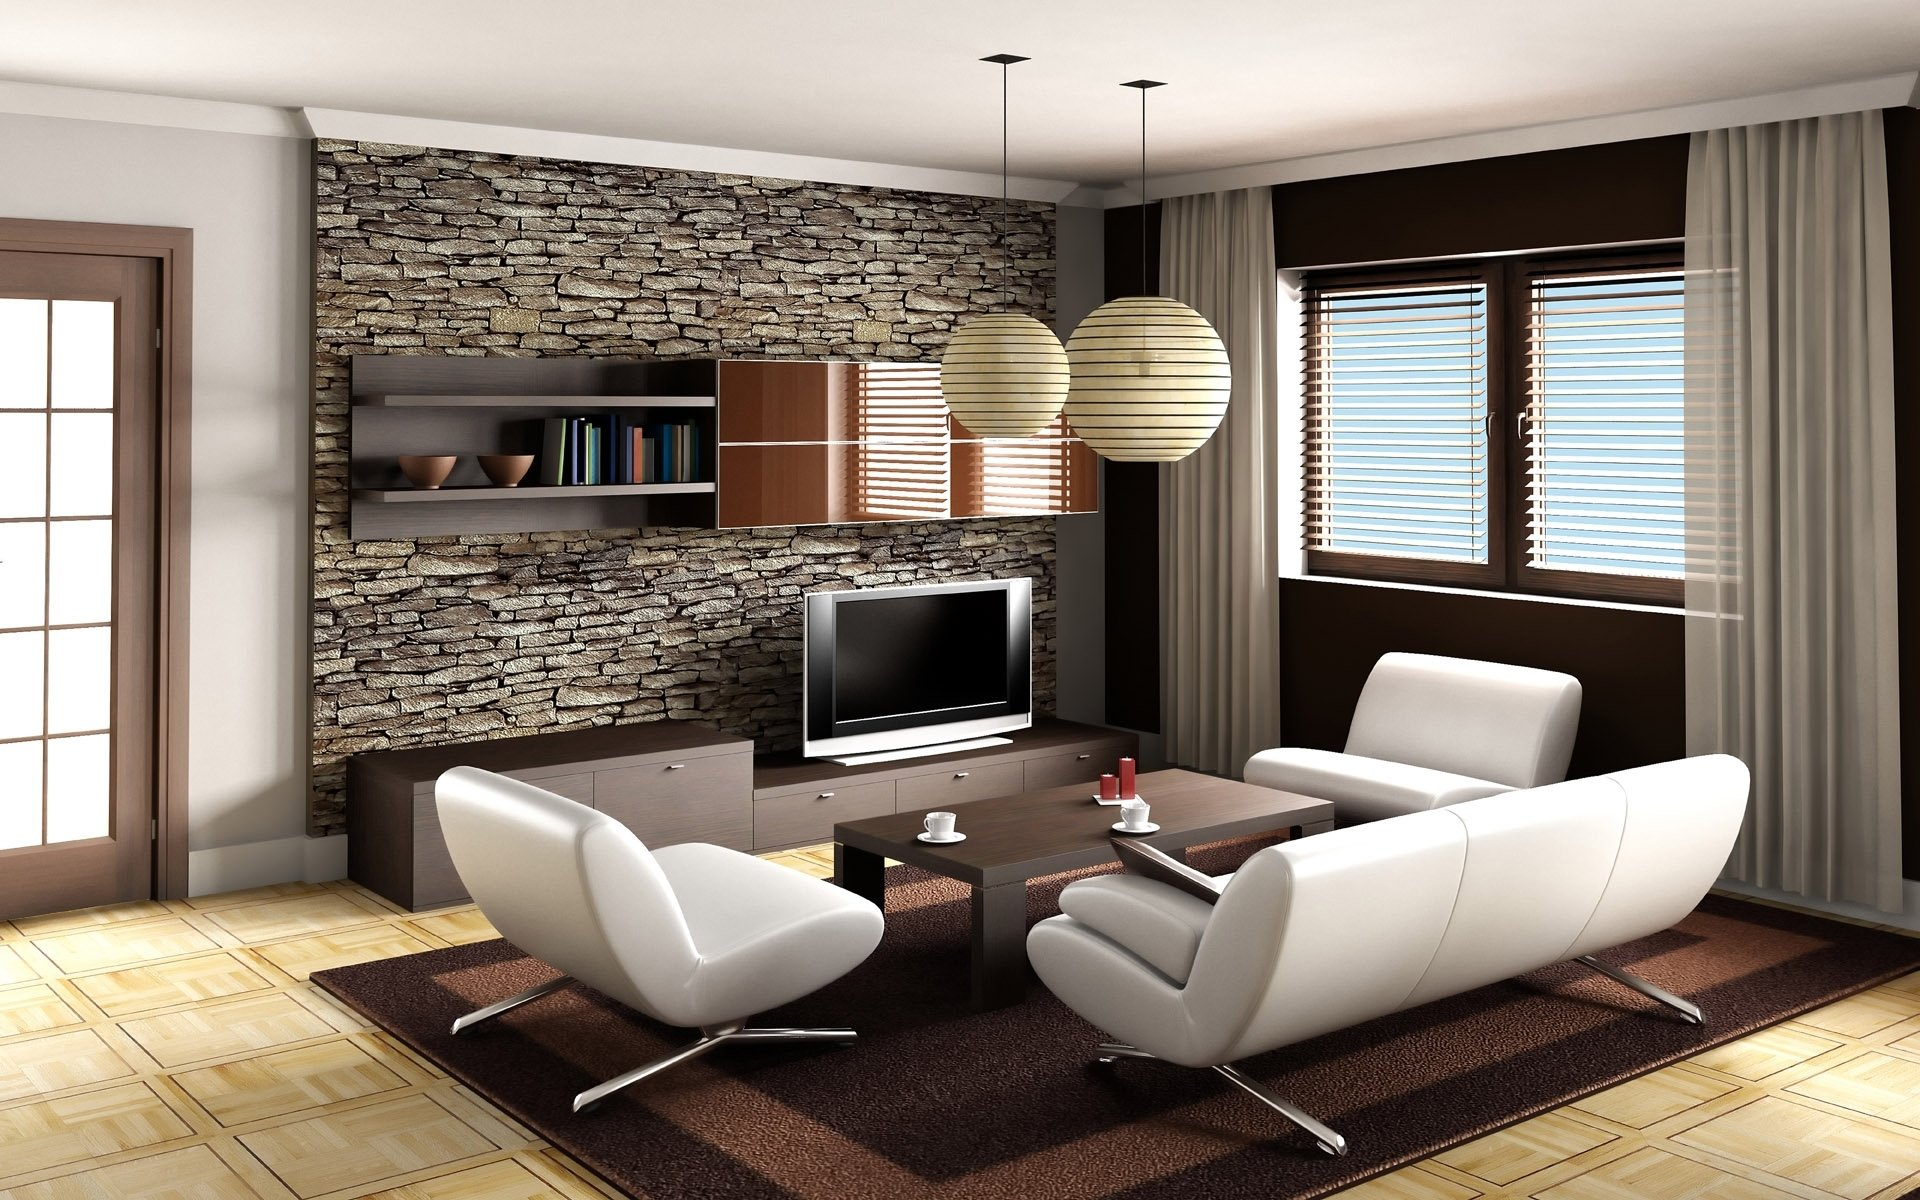 10 Attractive Ideas For Living Room Decor amazing of simple living room about modern living room i 3823 1 2020